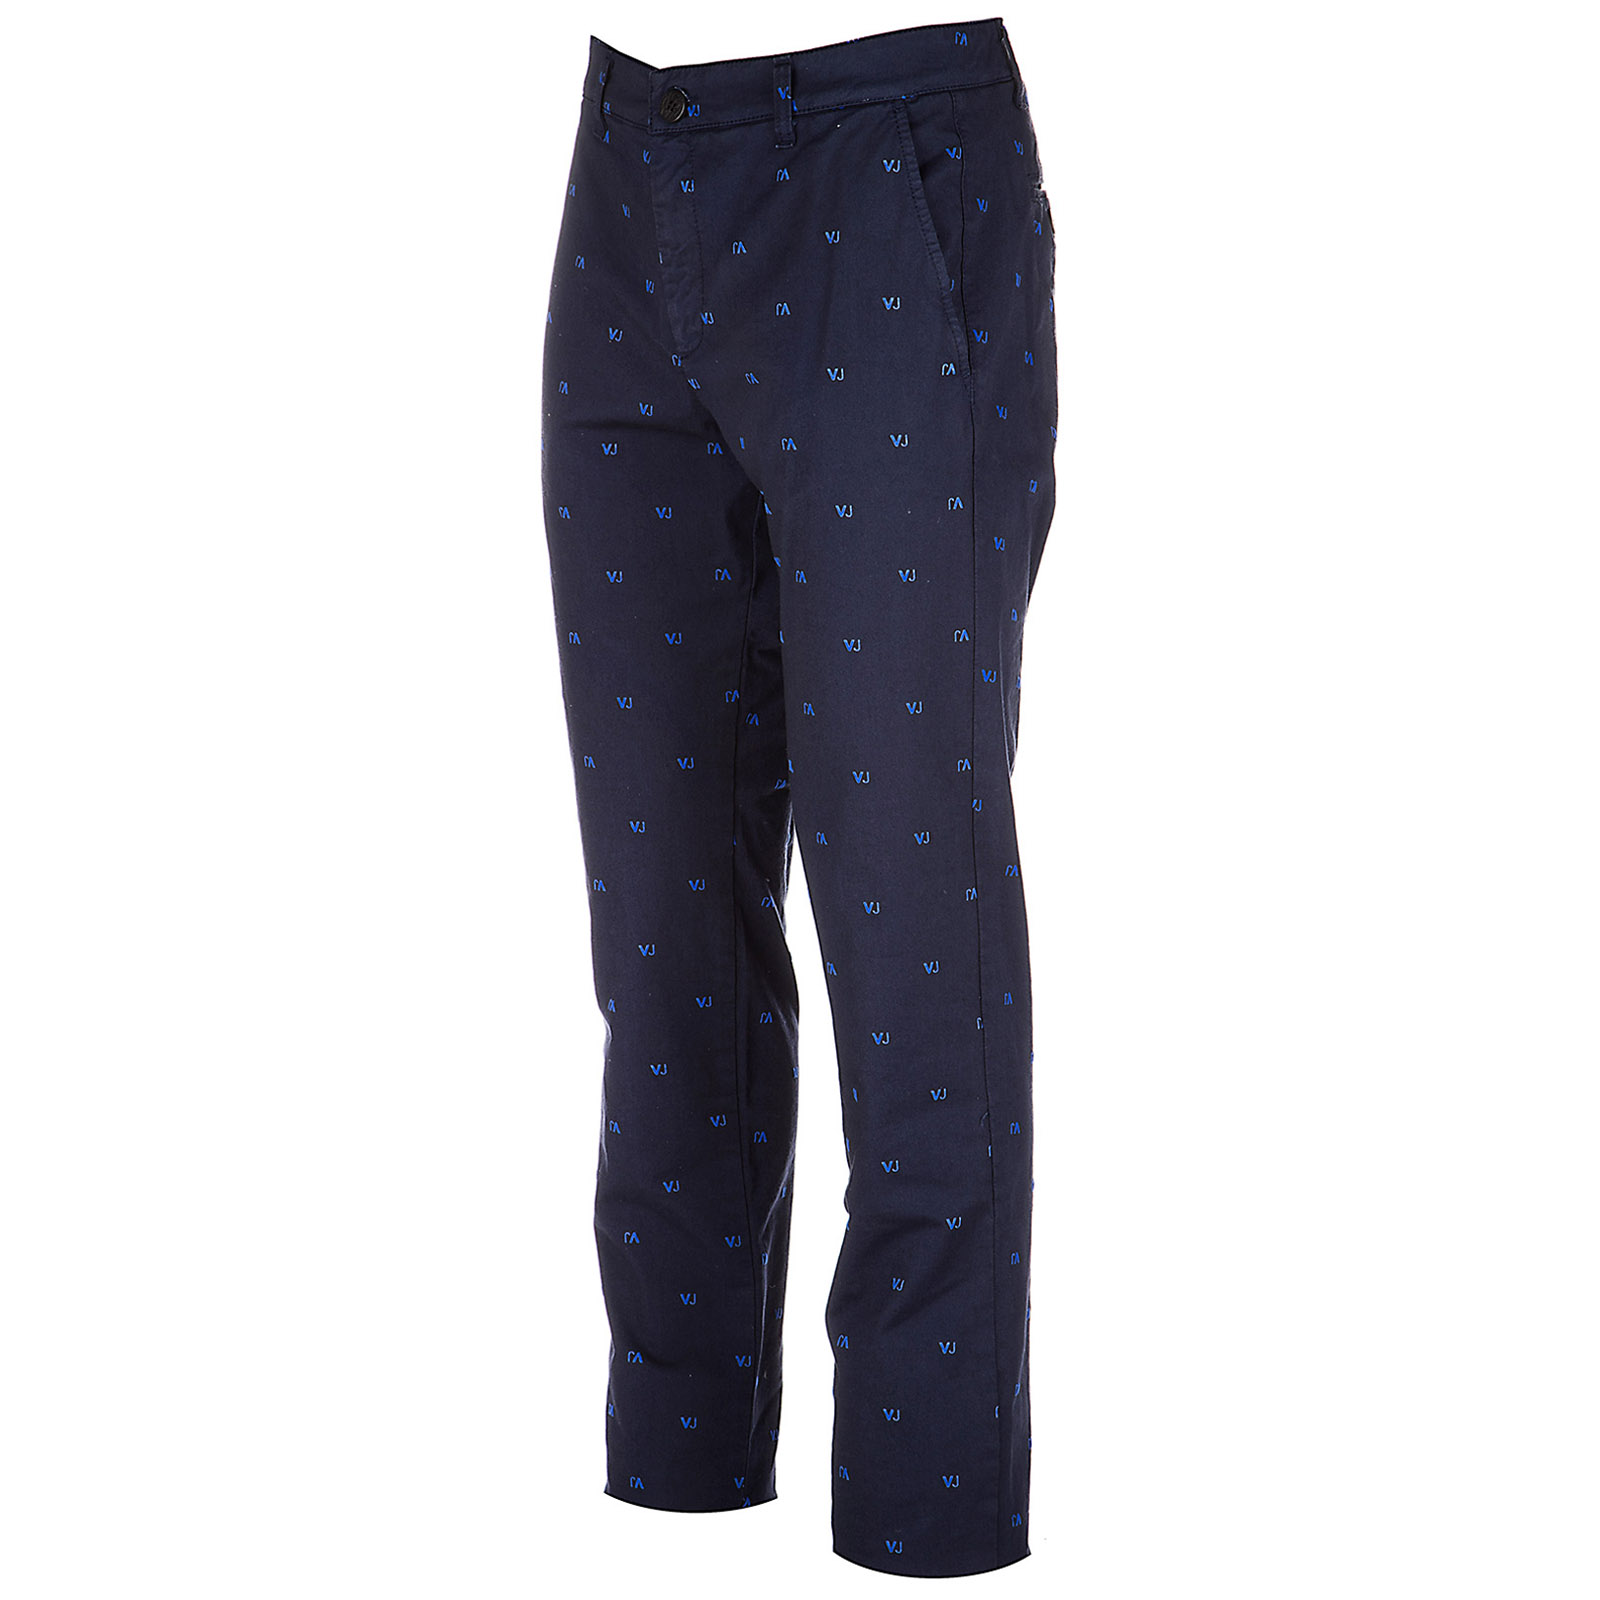 Men's trousers pants regular